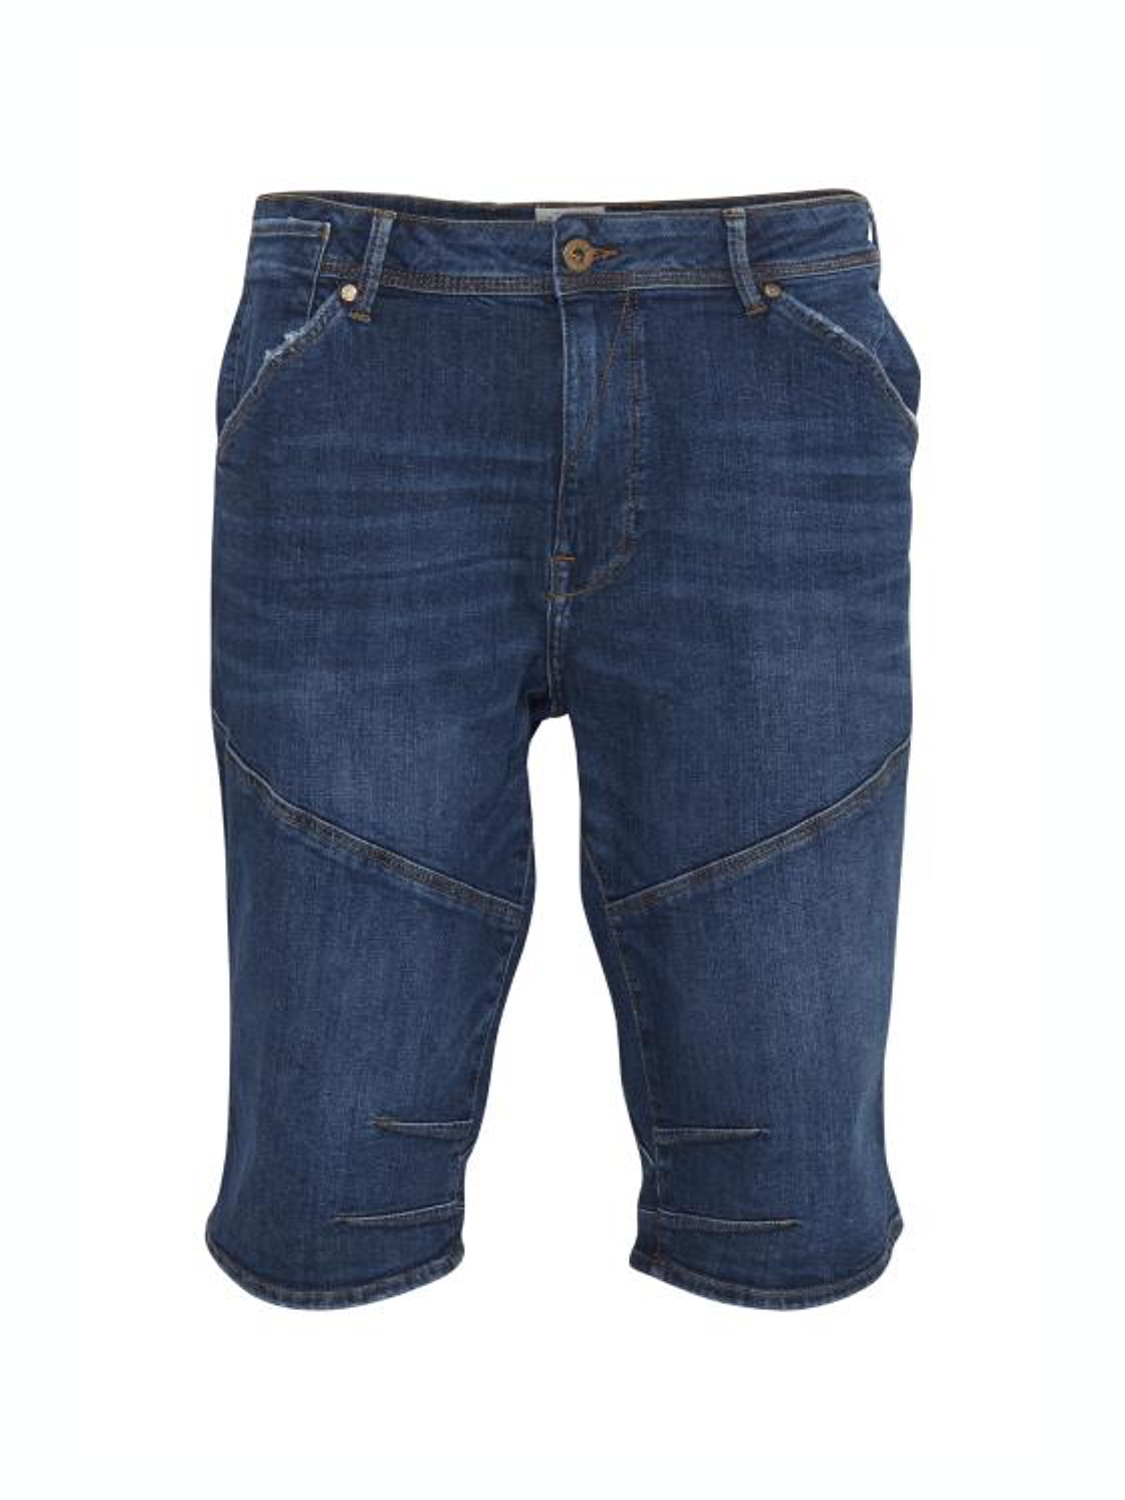 SOLID - DENIM SHORTS GREG SKY | GATE 36 Hobro